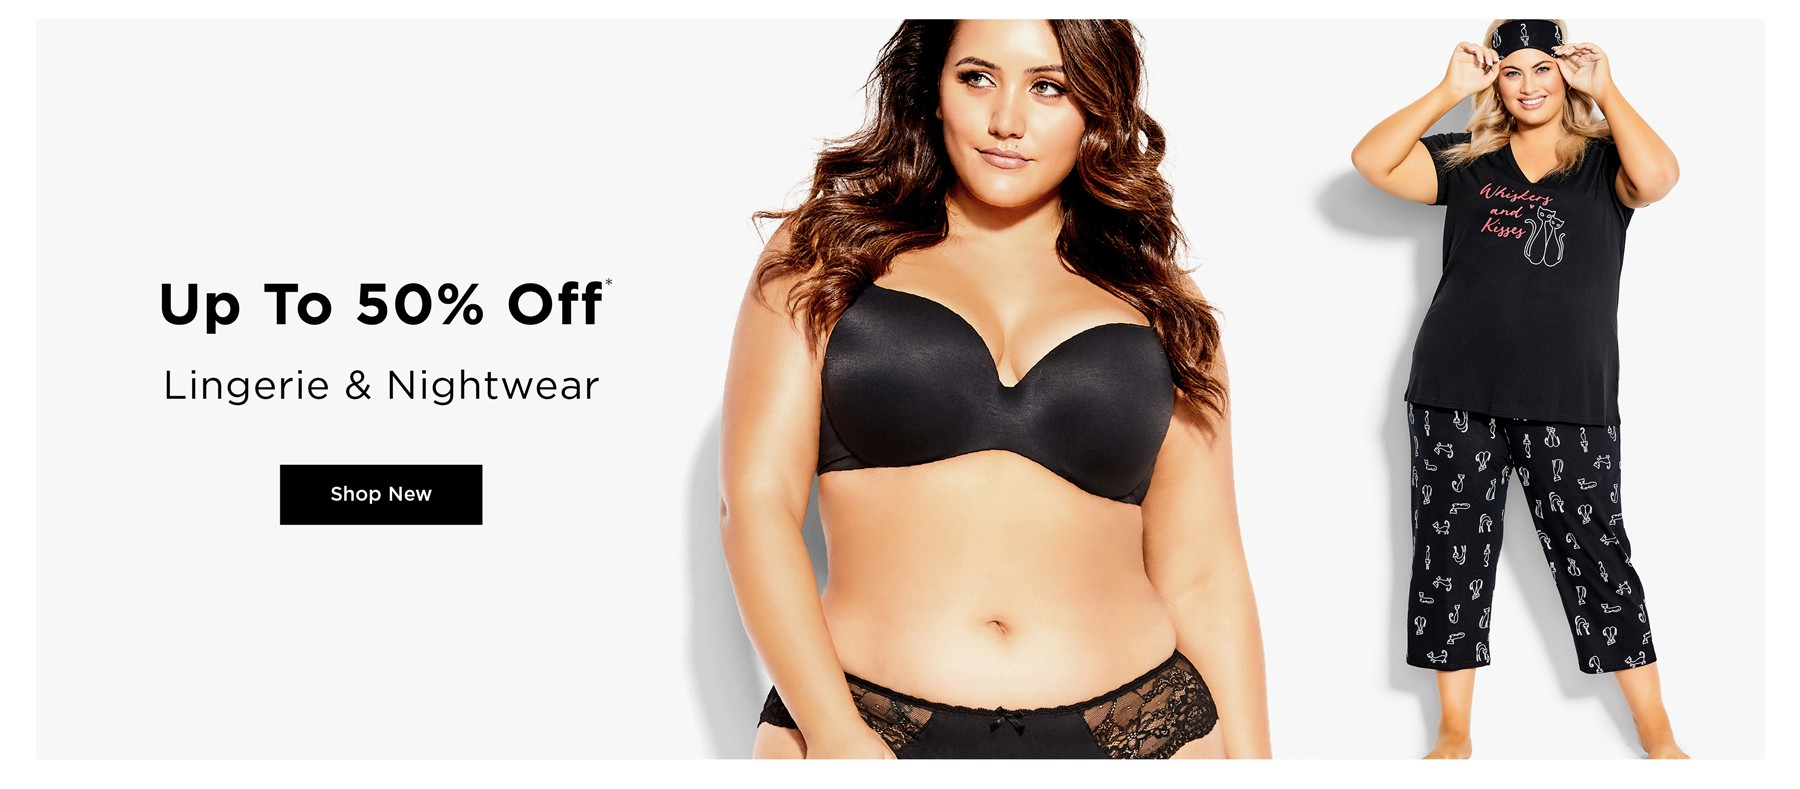 UP TO 50% OFF* LINGERIE & NIGHTWEAR - PRICES AS MARKED